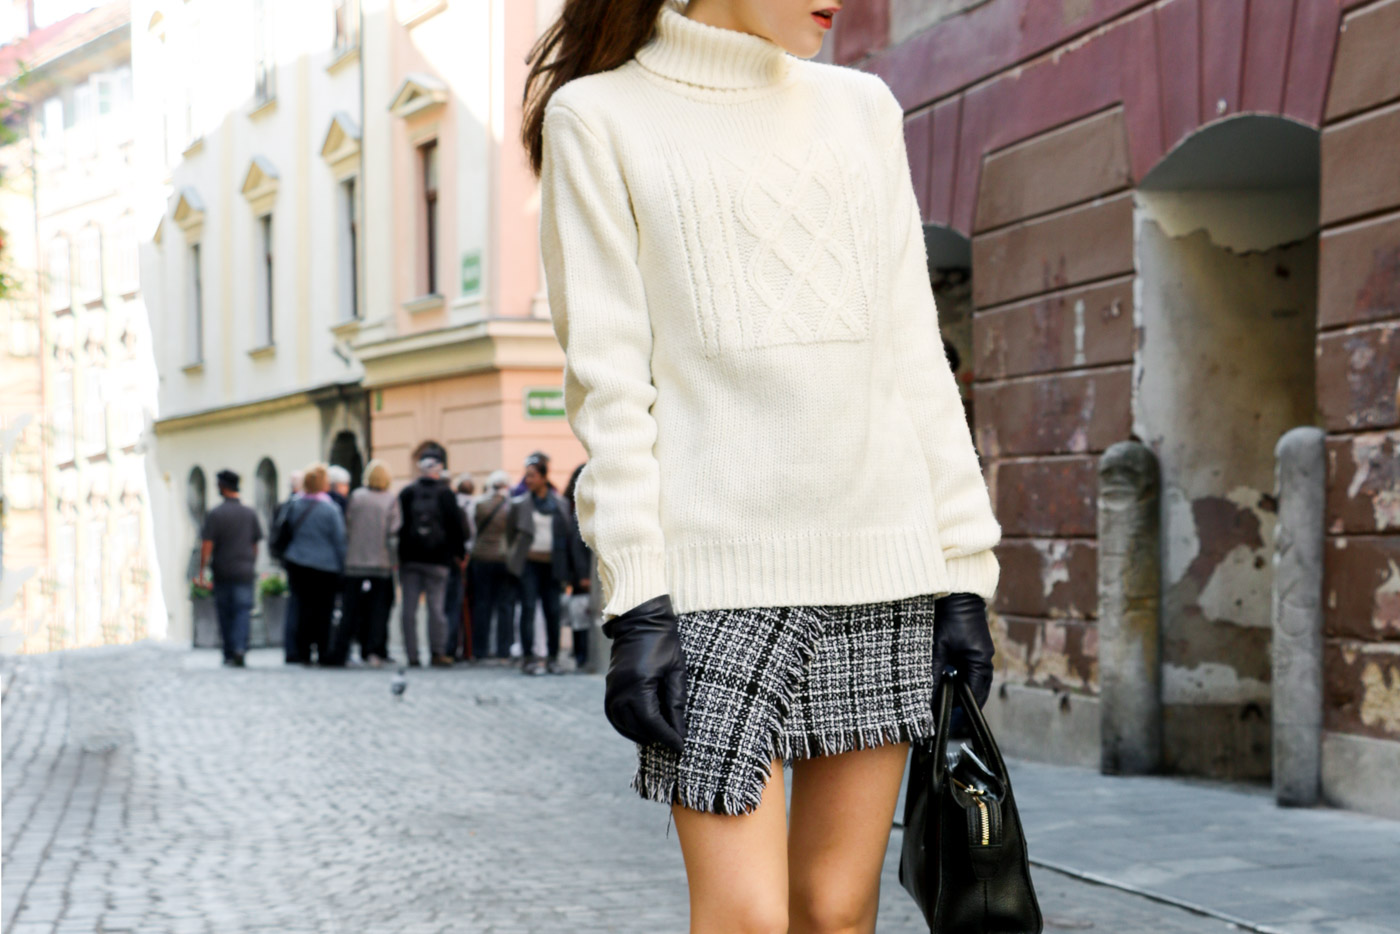 Fashion Blogger Veronika Lipar of Brunette from Wall Street on how to wear oversized knits to look sexy this autumn